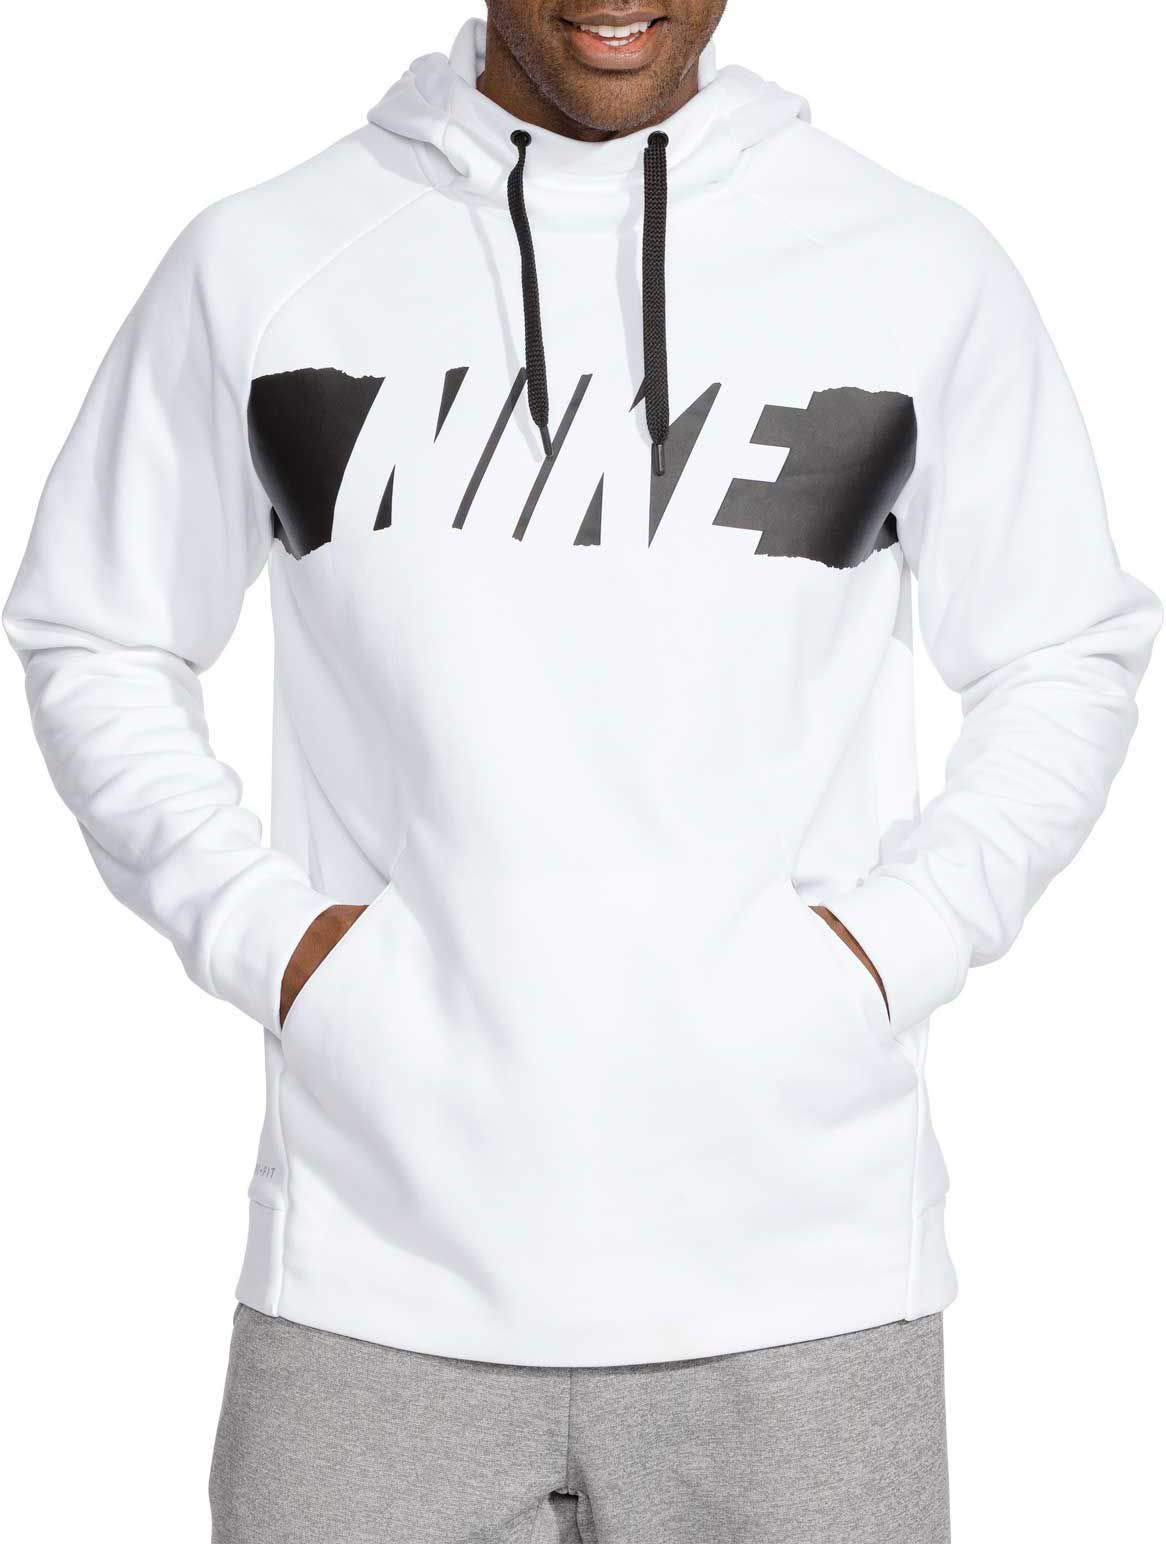 NIKE Men's Therma Graphic Training Hoodie (White/Black, X-Large)